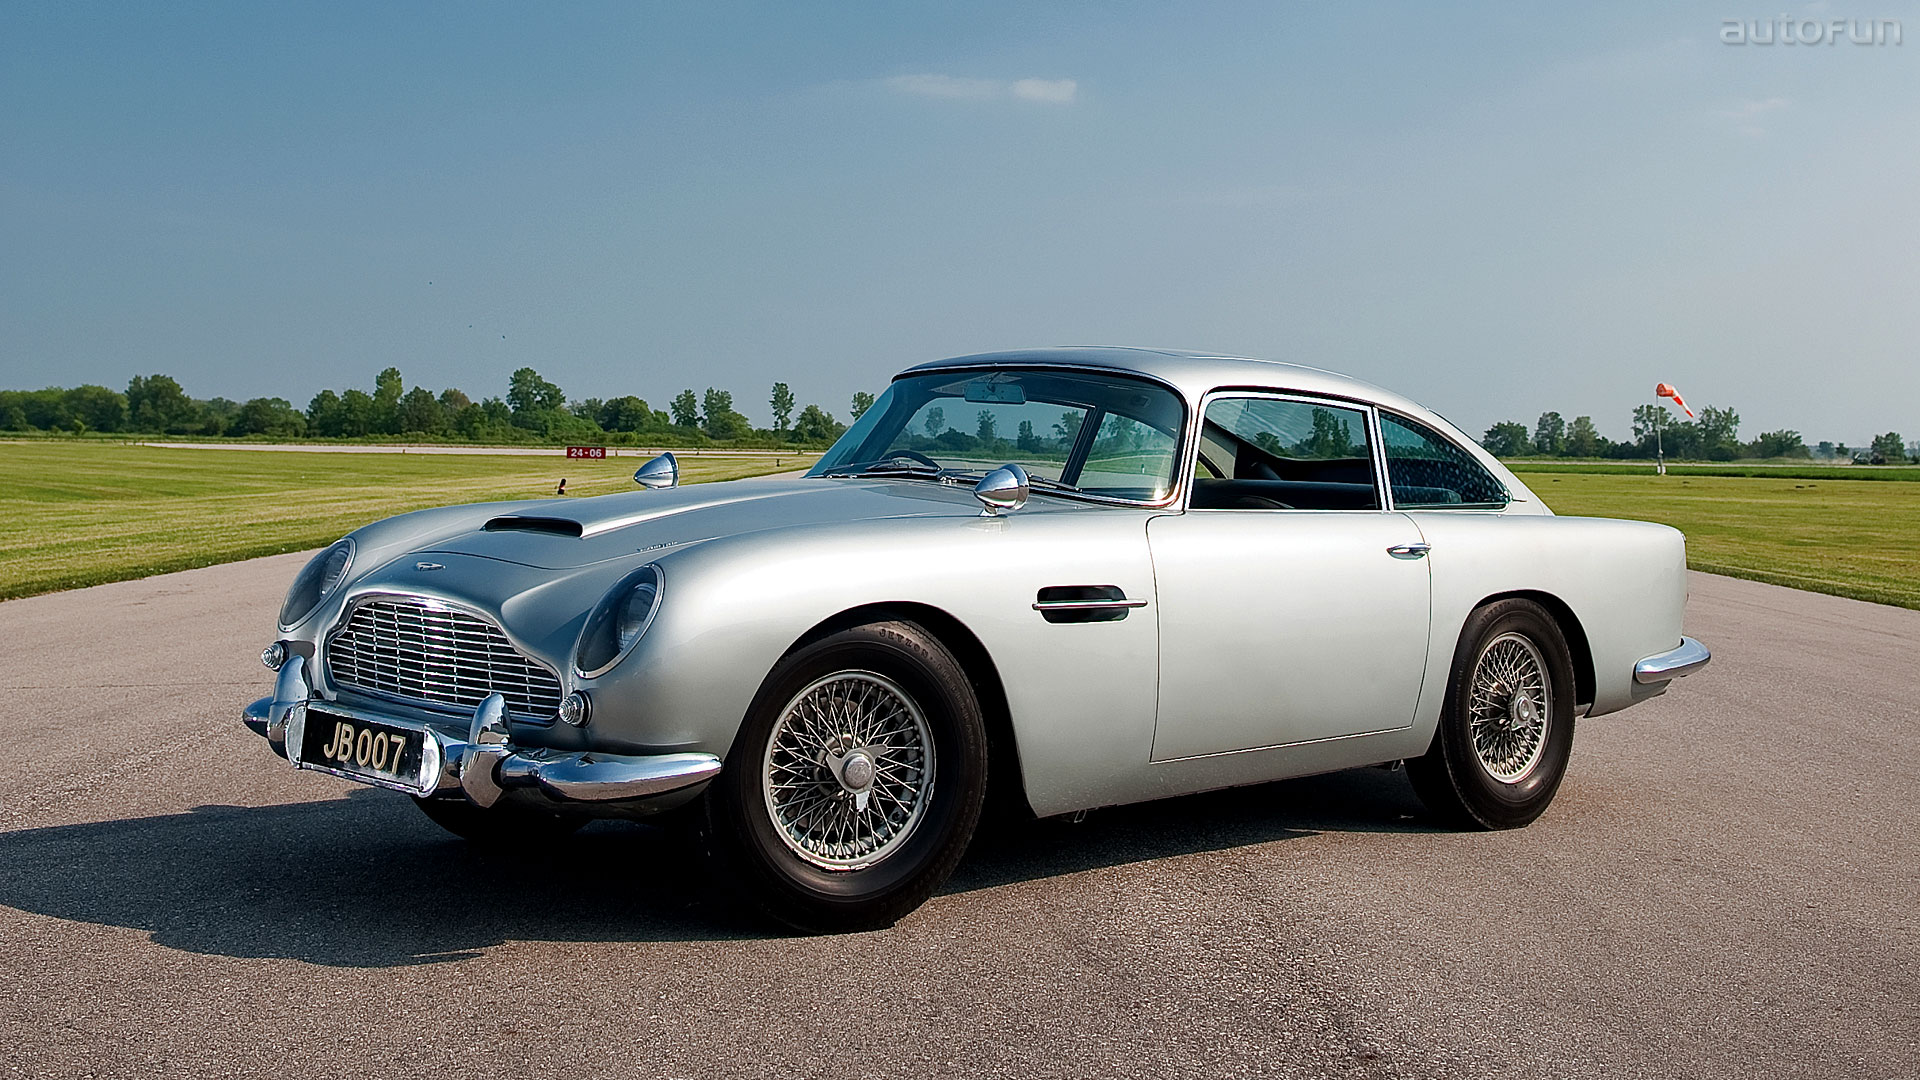 Our list of sexy cars includes the Aston Martin DB5